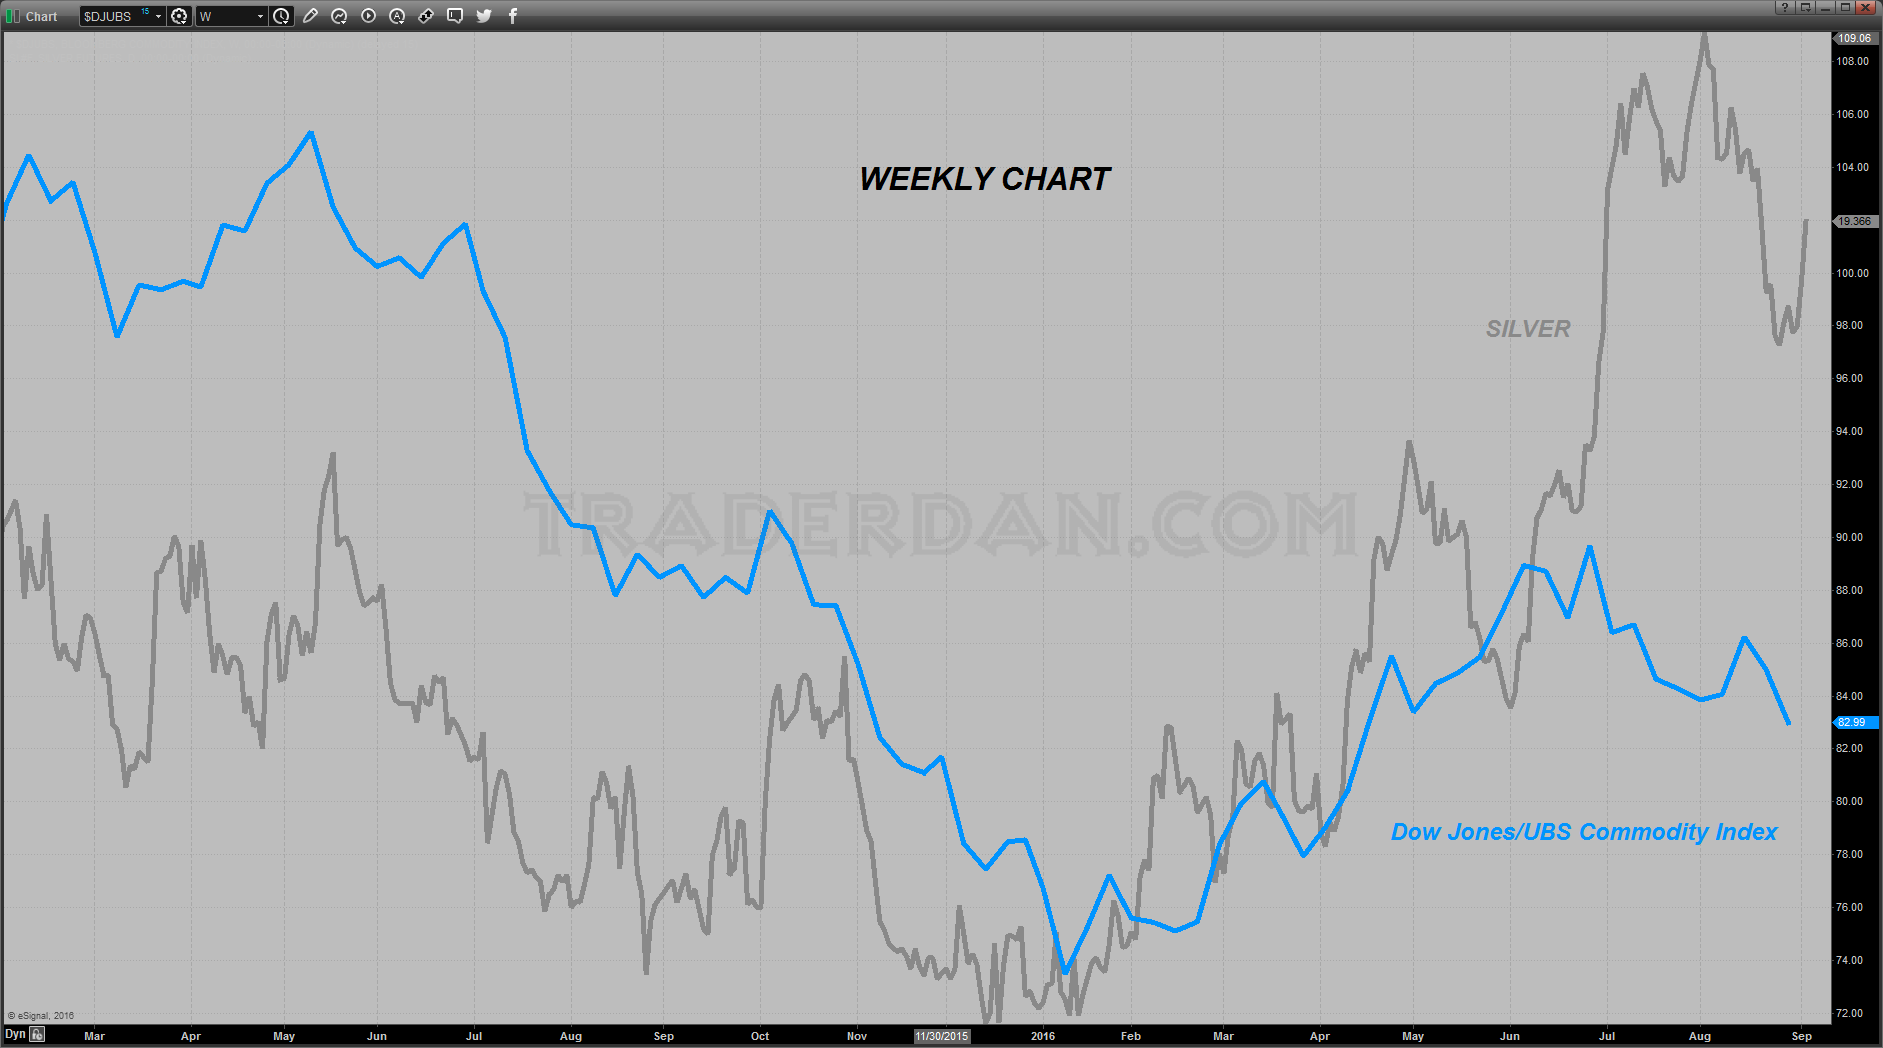 Silver vs DJ/UBS Commodity Index Weekly